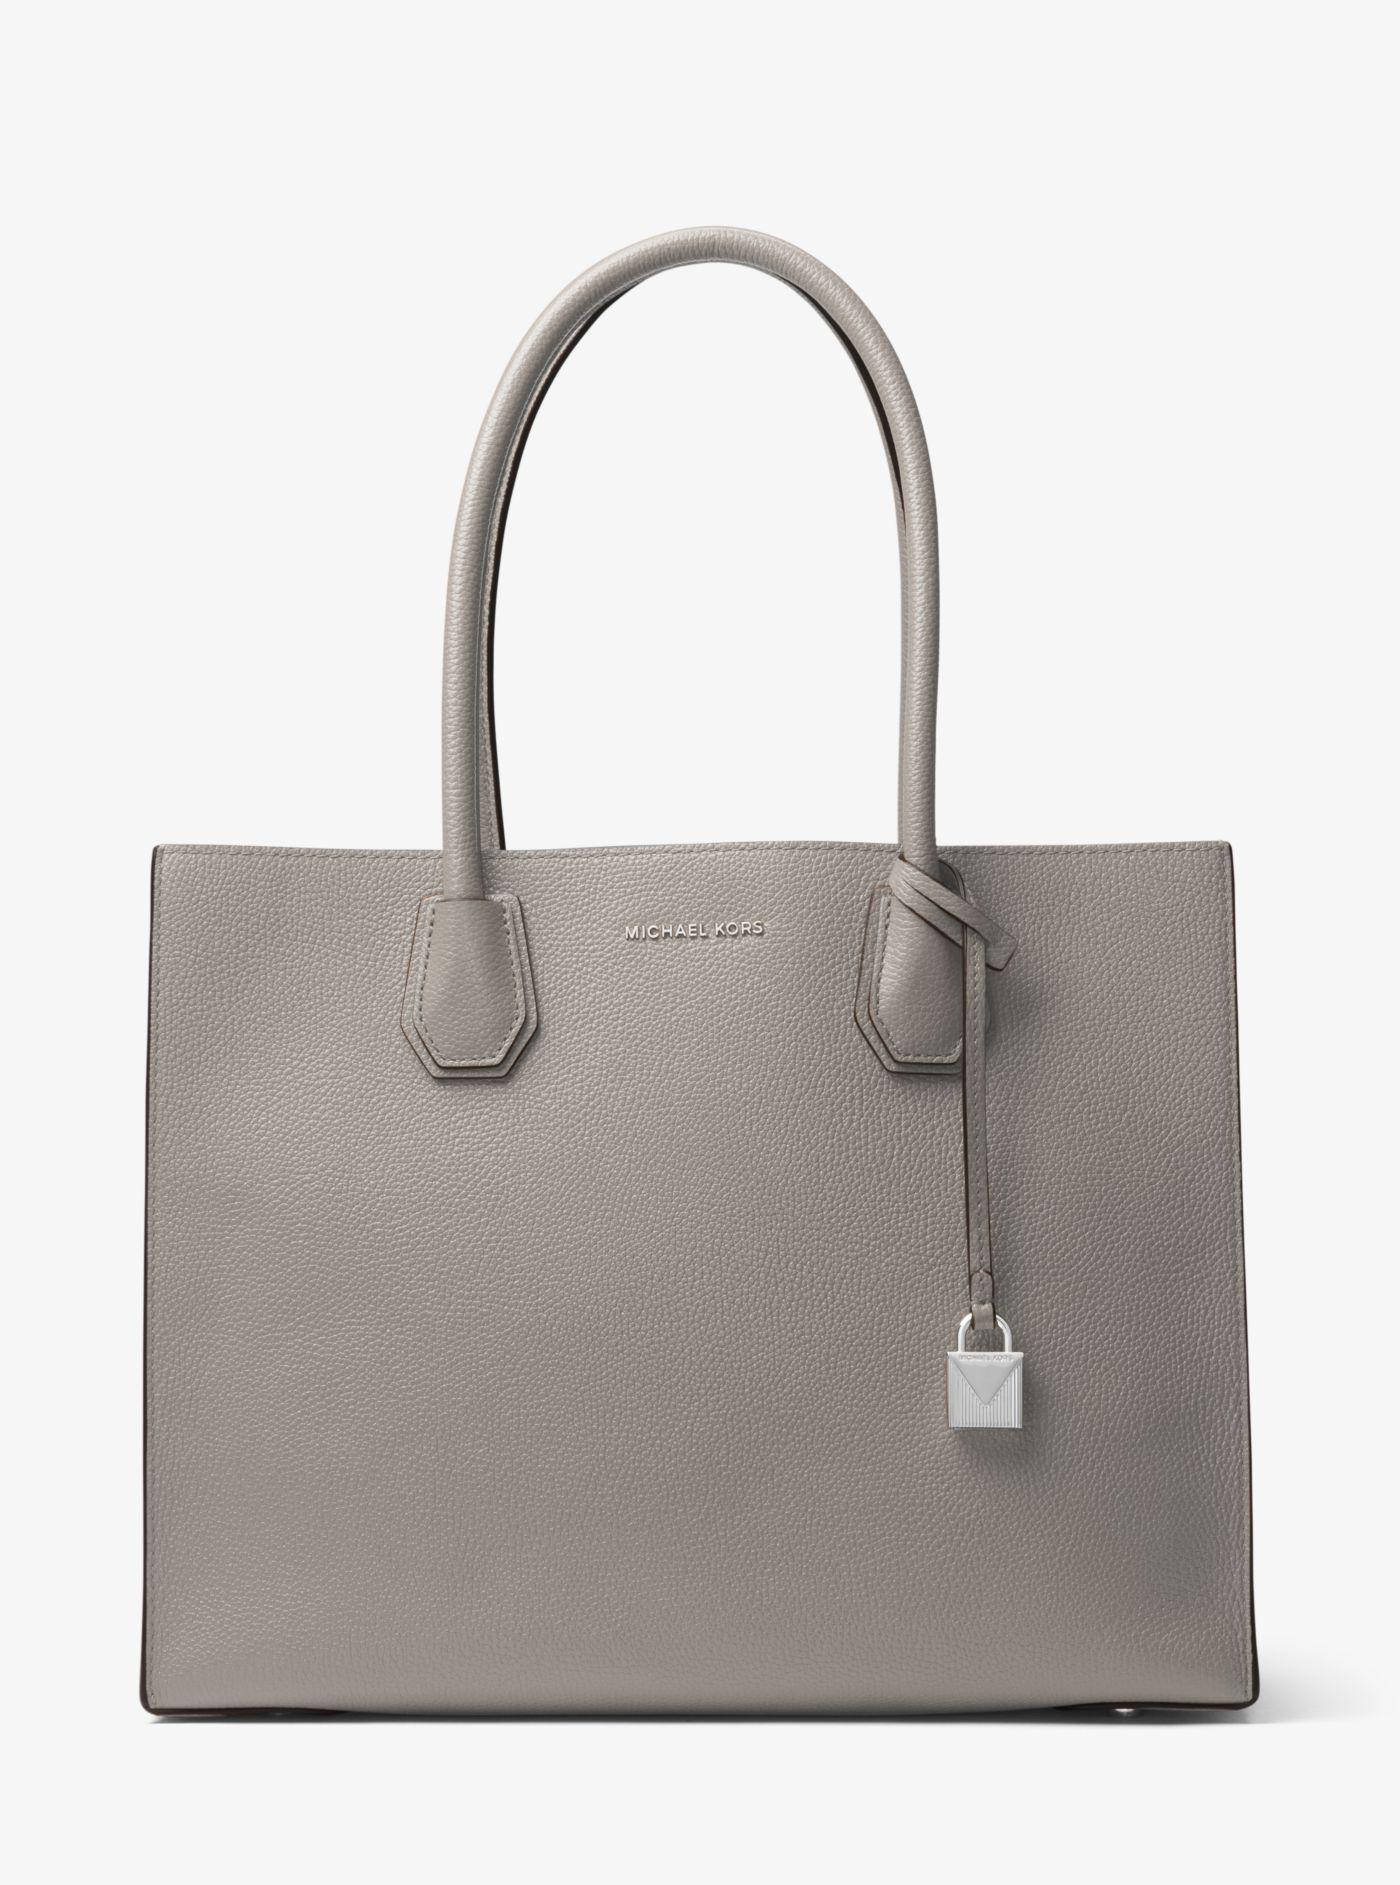 32270efbd996 Lyst - Michael Kors Mercer Extra-large Leather Tote in Gray